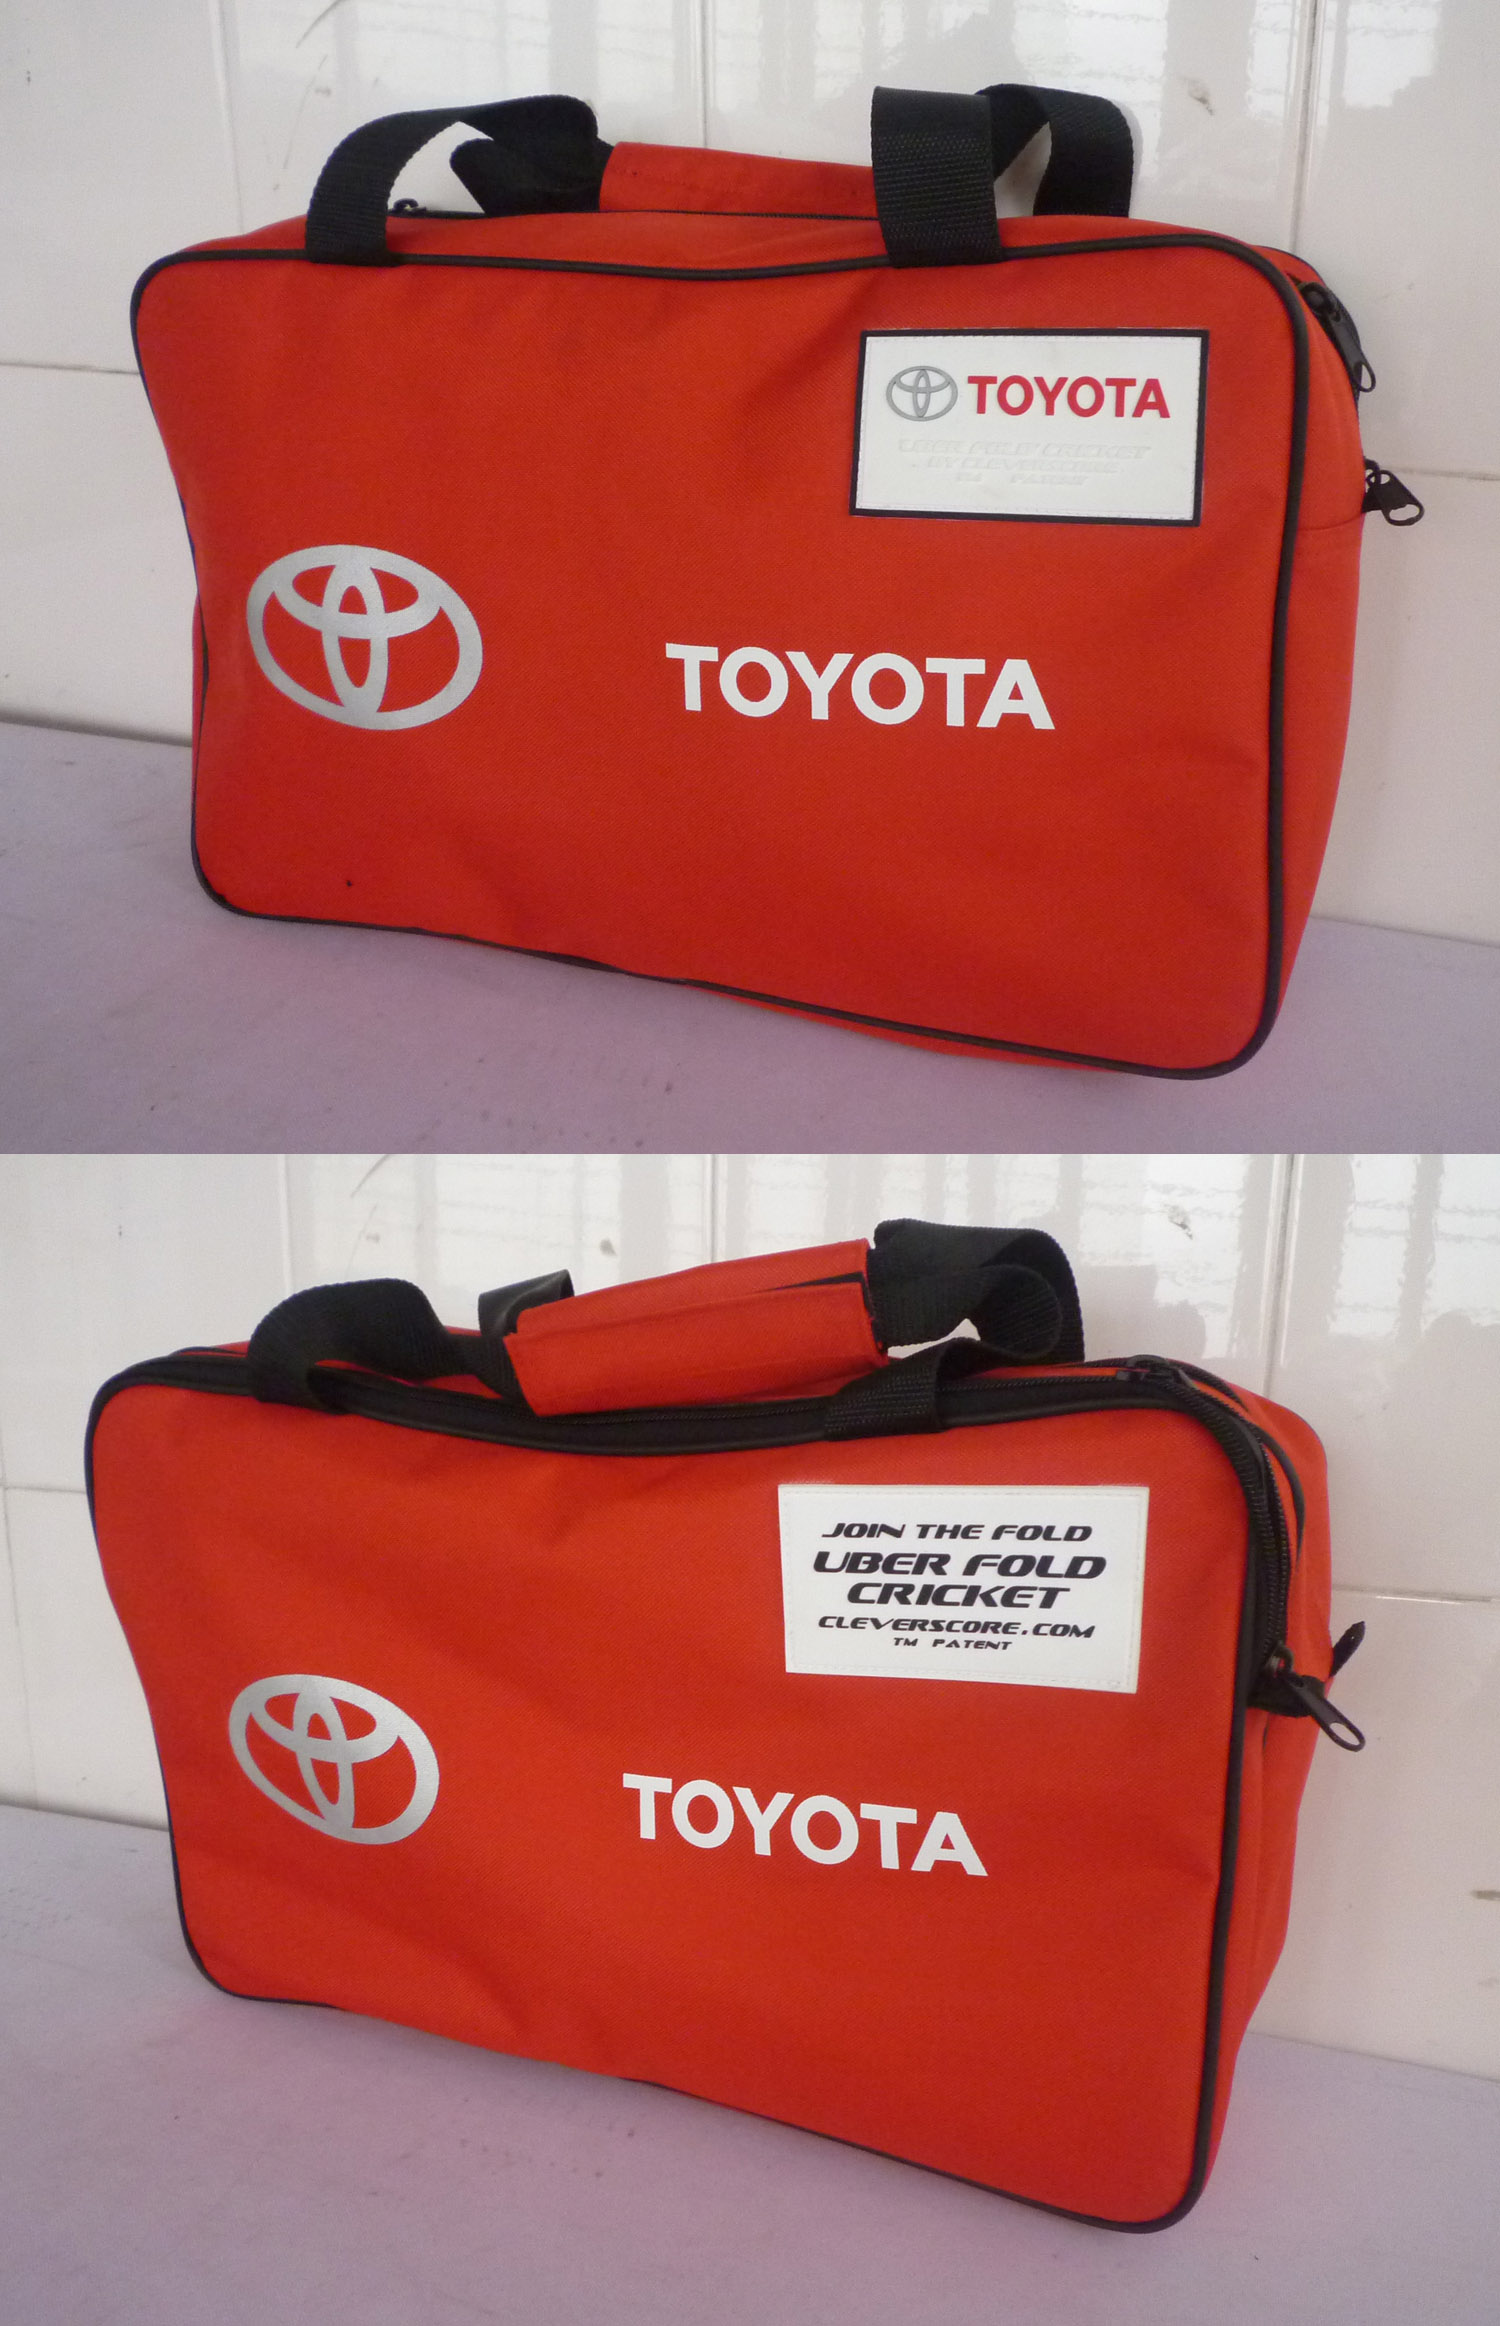 TOYOTA CRICKET BAG